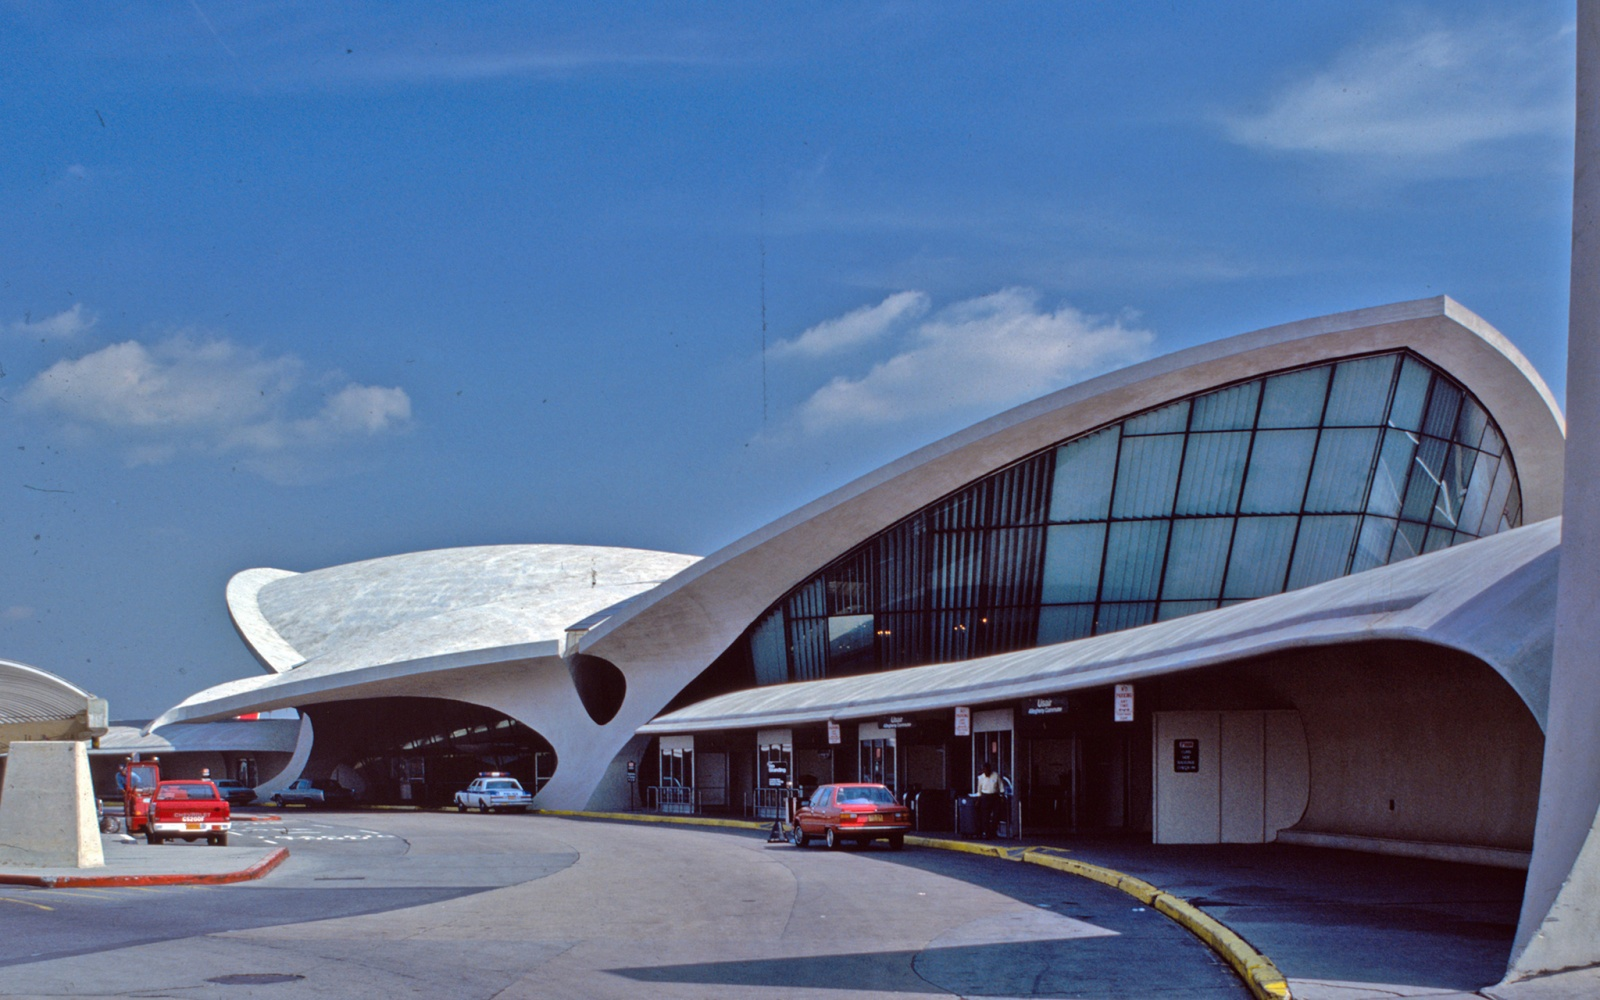 Jetblue hotel twa terminal travel leisure for Hotels near jf kennedy airport